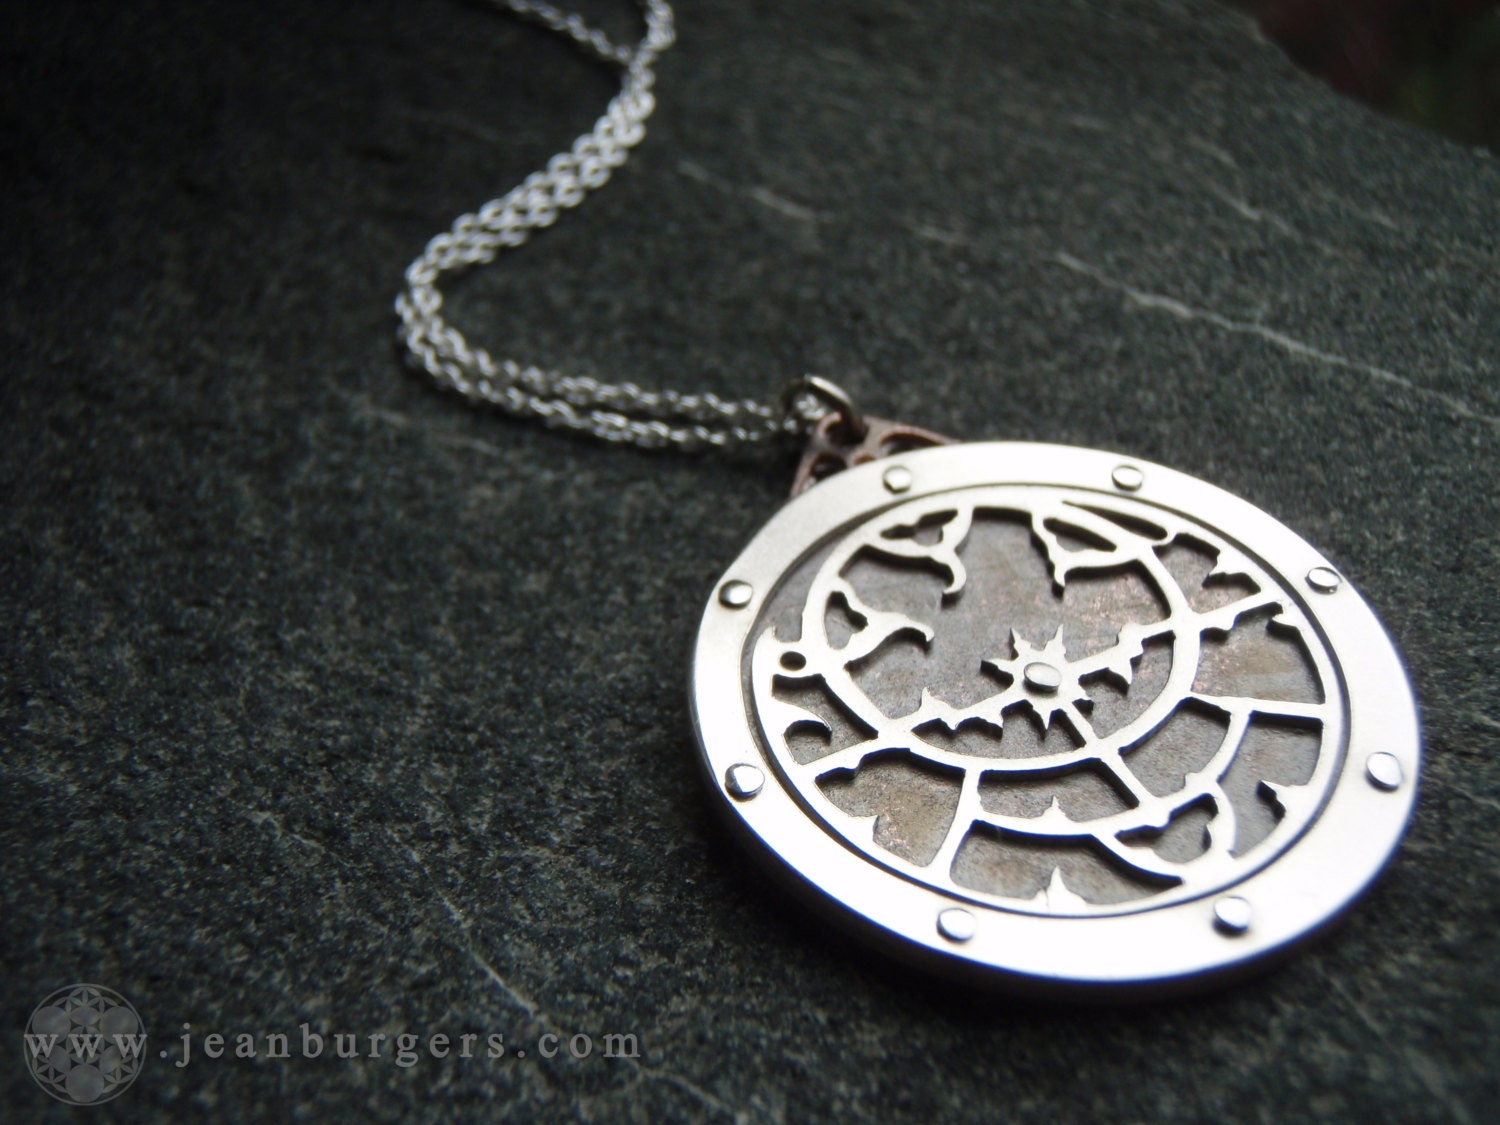 planispheric astrolabe pendant ancient mapping device